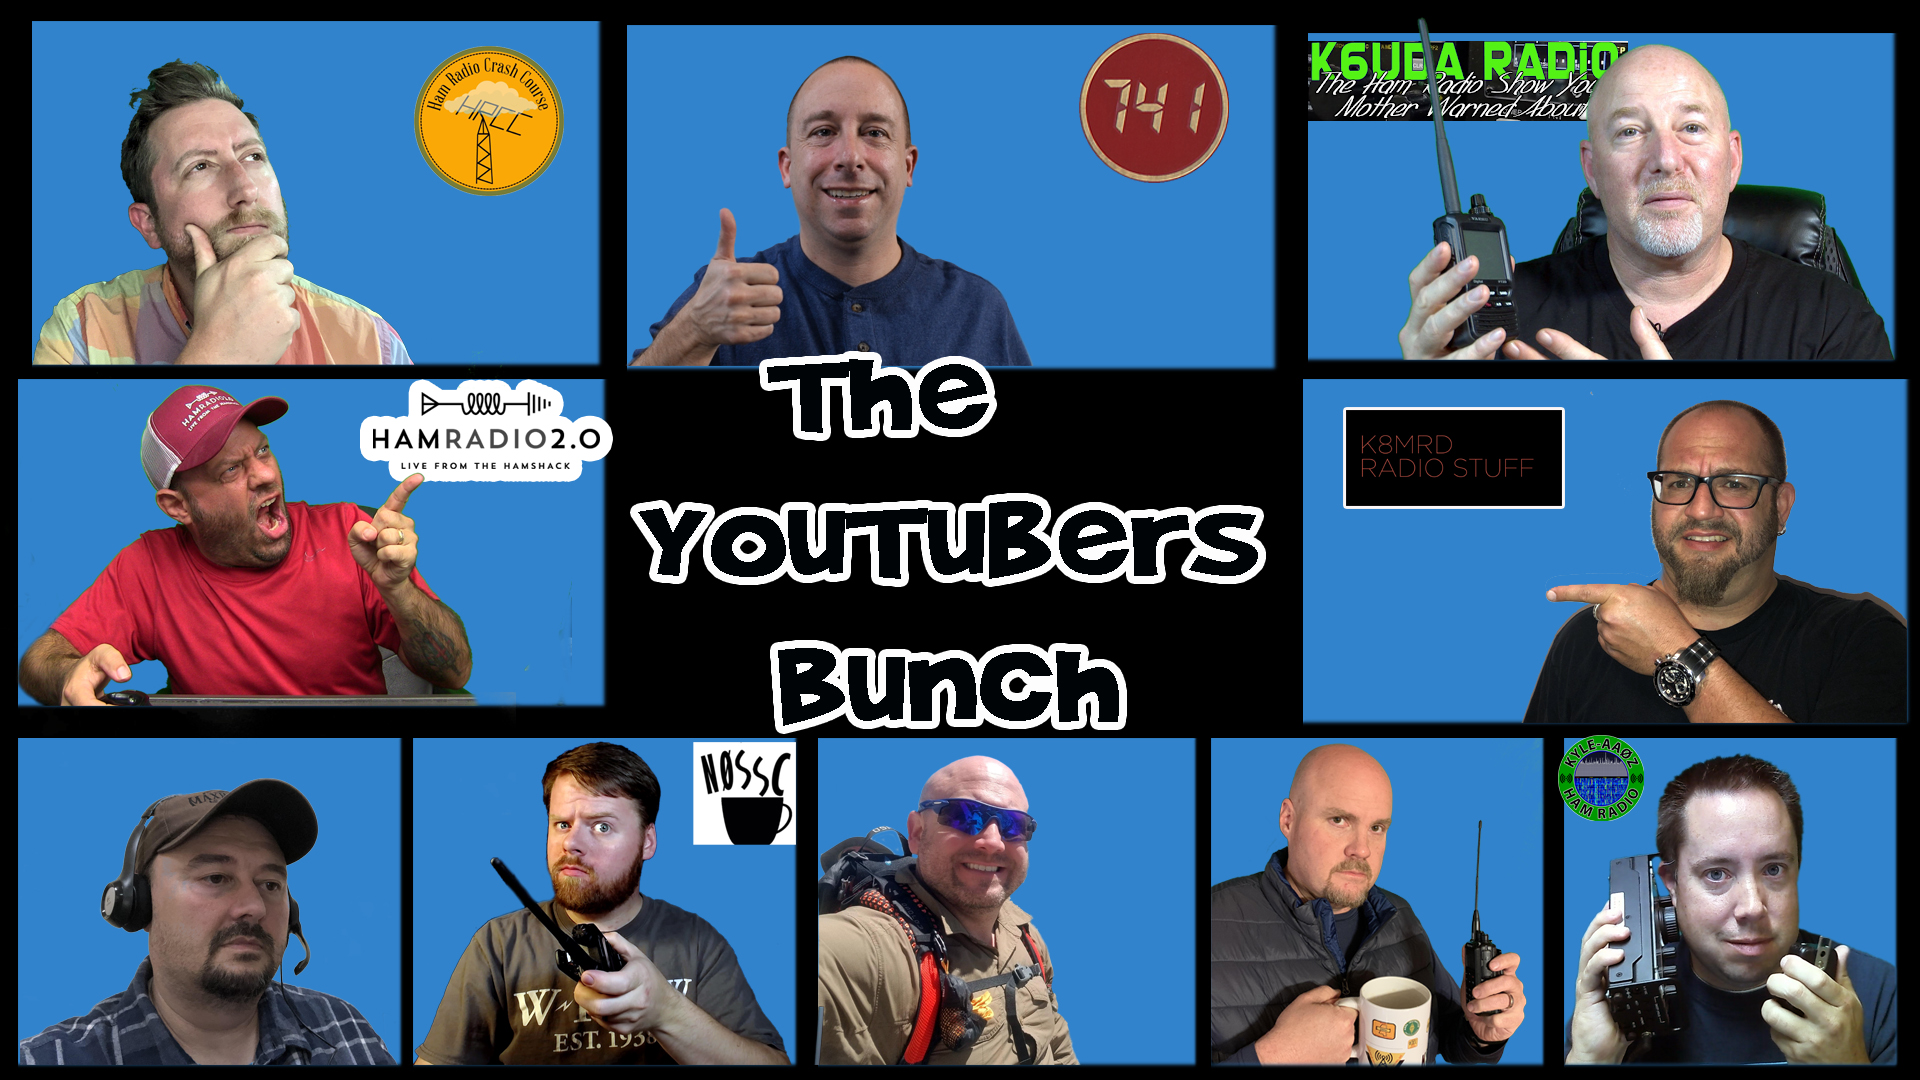 Episode 309: Hamcation, Prepper Radio and The Walking Dead | YouTubers Bunch #9